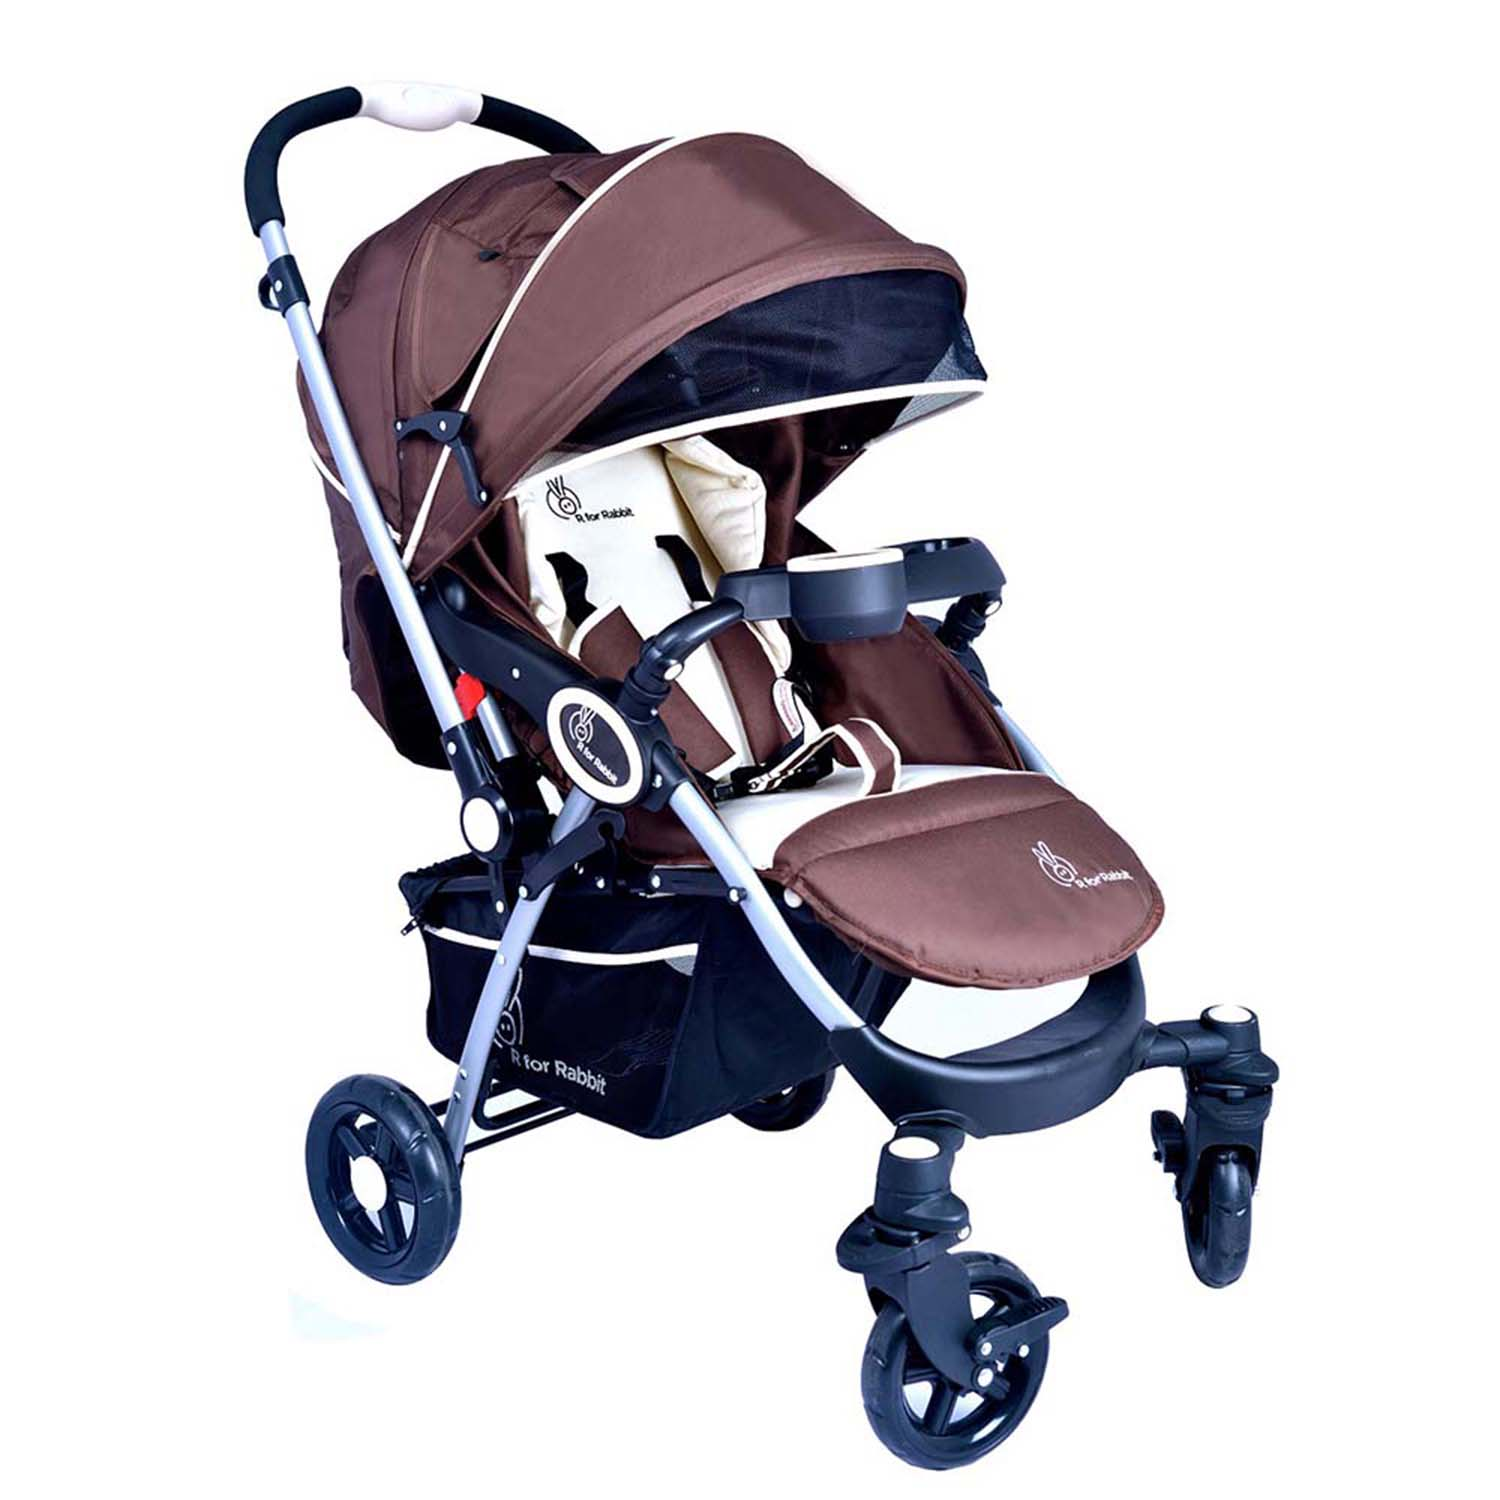 R For Rabbit Chocolate Ride Stroller Brown